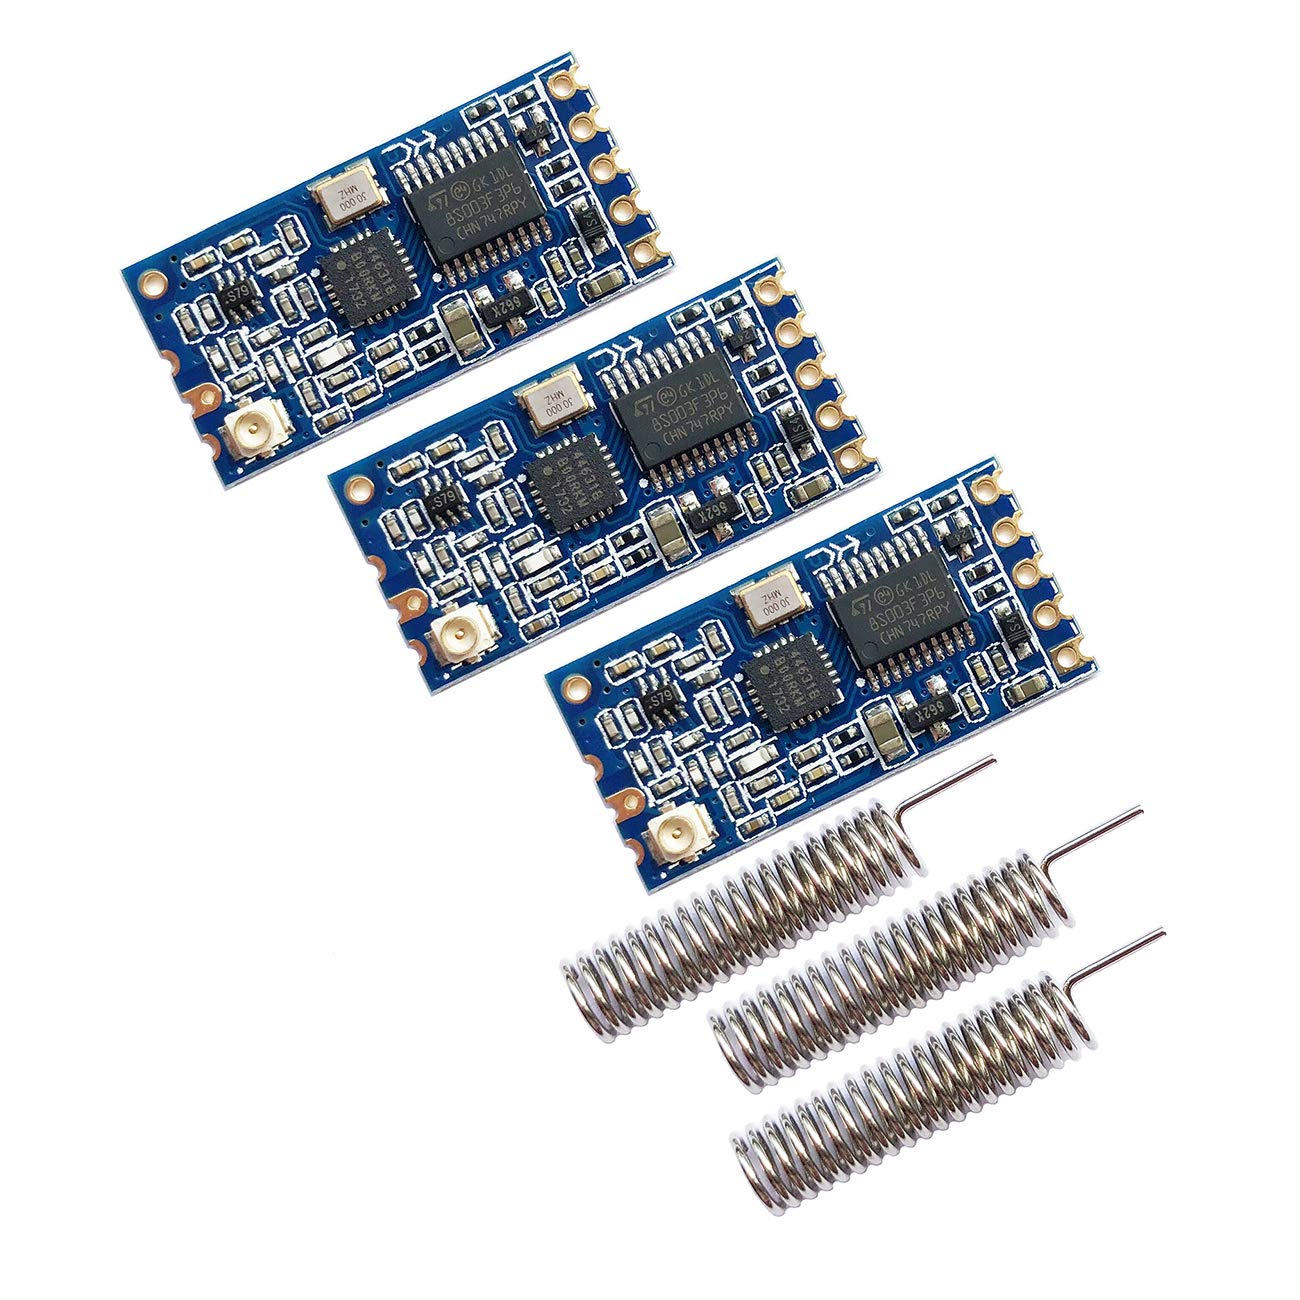 Alwayshare HC-12 433Mhz SI4463 Wireless Serial Port Module 1000m Replace Bluetooth with Antenna (Blue) by Sunhokey